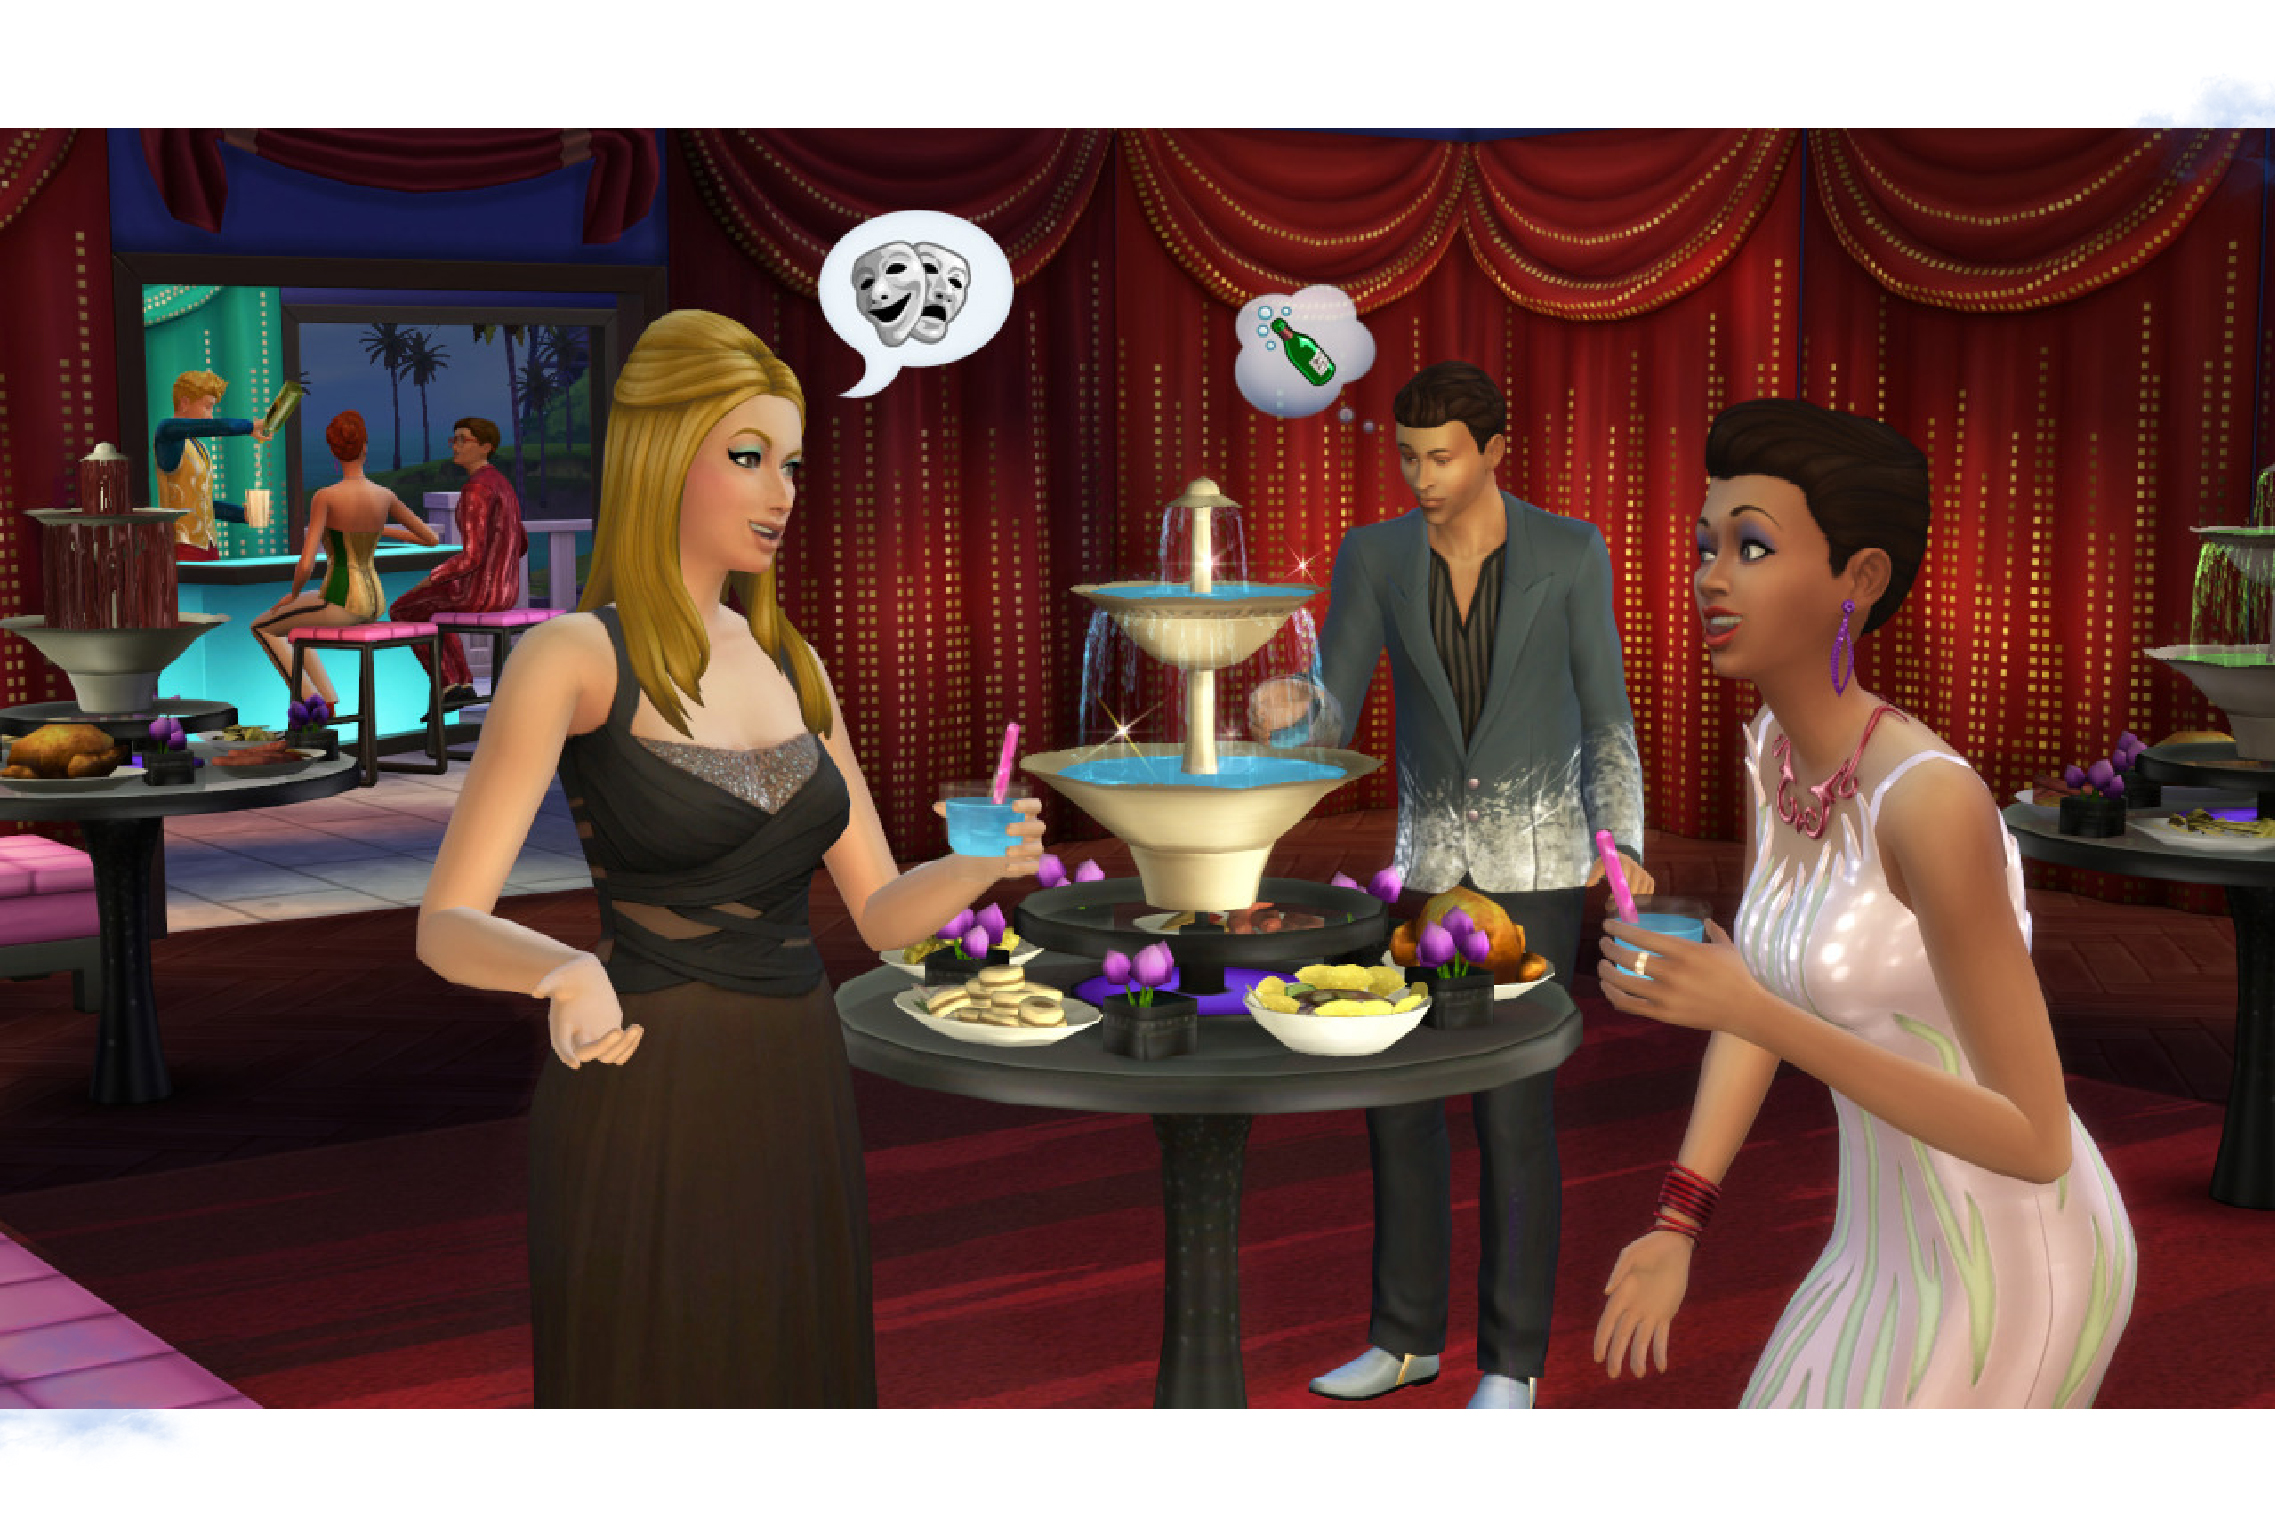 The Sims 4: Ranking the Packs 7